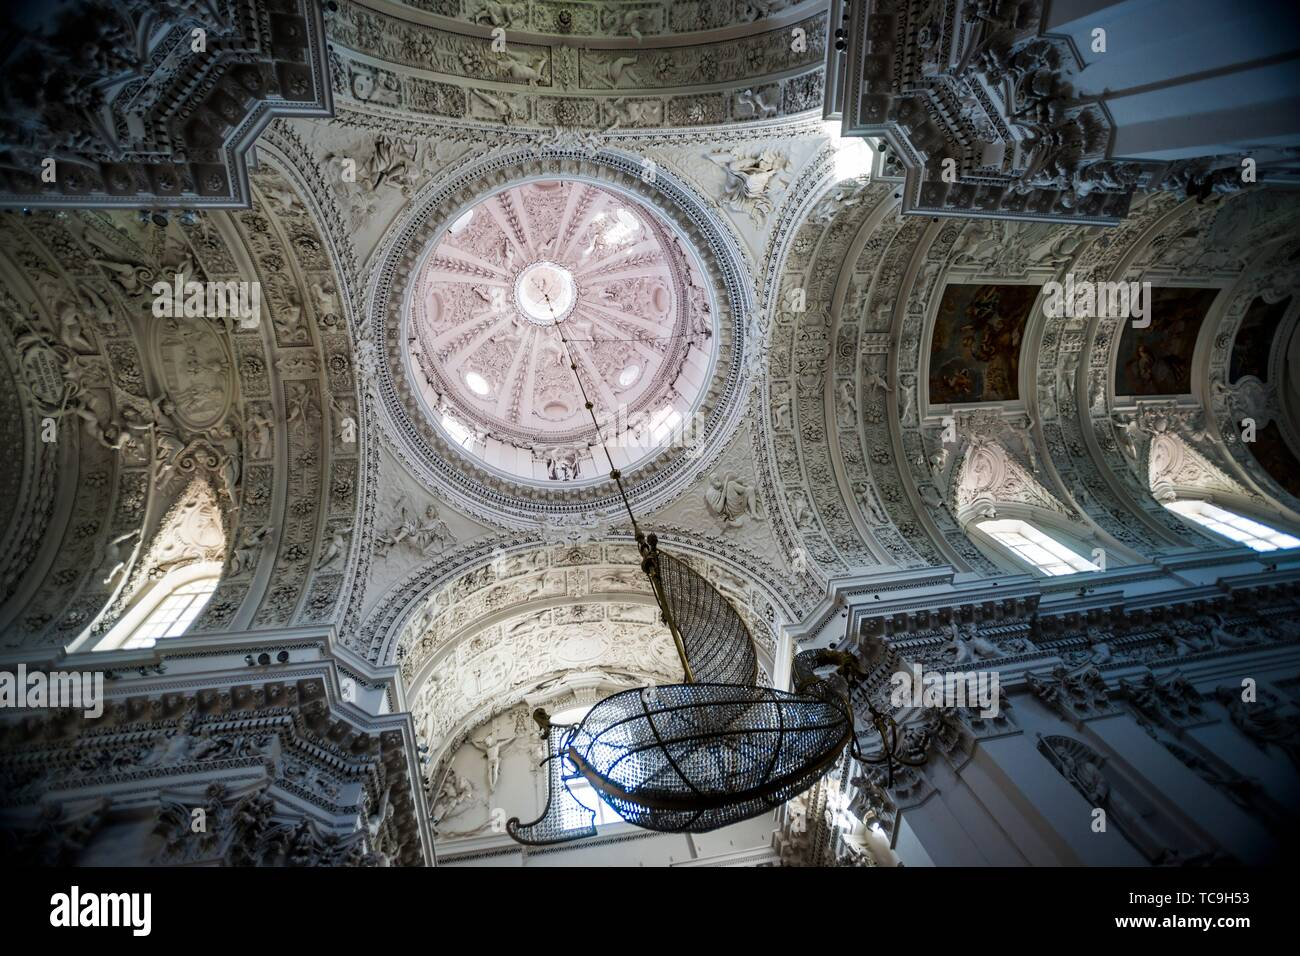 Boat-shaped chandelier. Interior of Church of St. Peter and St. Paul. Antakalnis District, Vilnius, Lithuania, Baltic States, Europe. - Stock Image